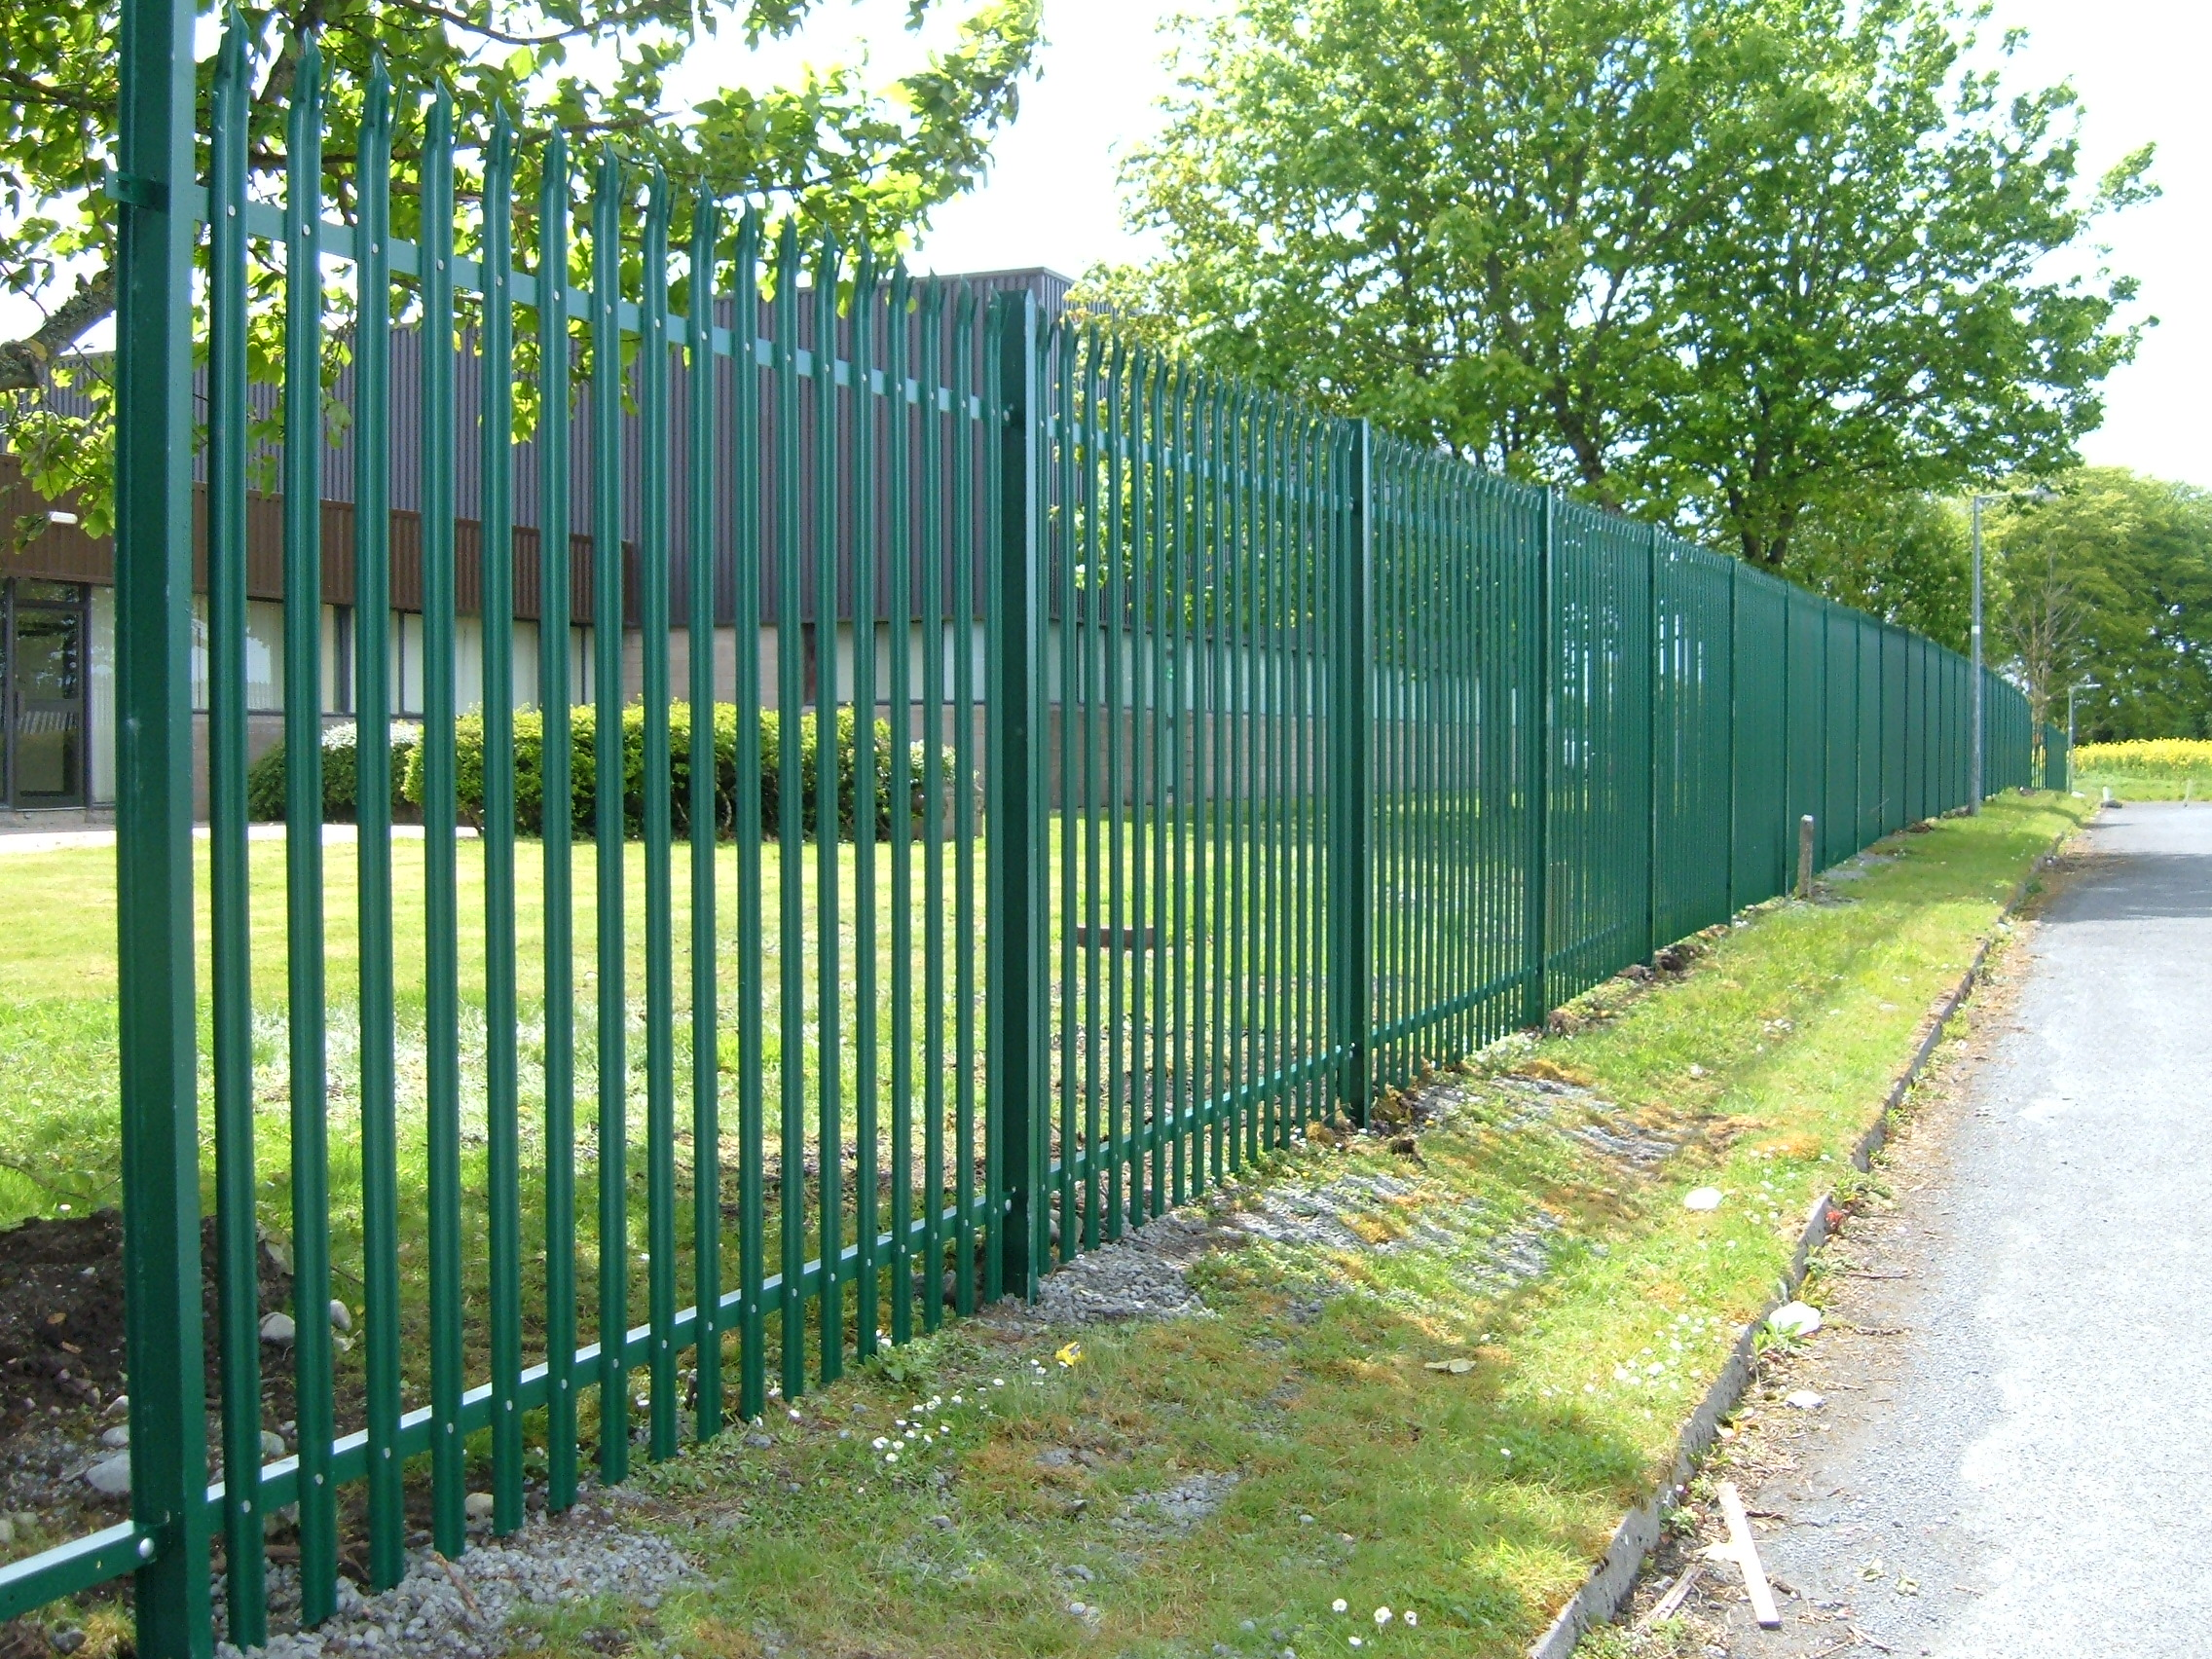 different types of security fencing available in the market. Black Bedroom Furniture Sets. Home Design Ideas